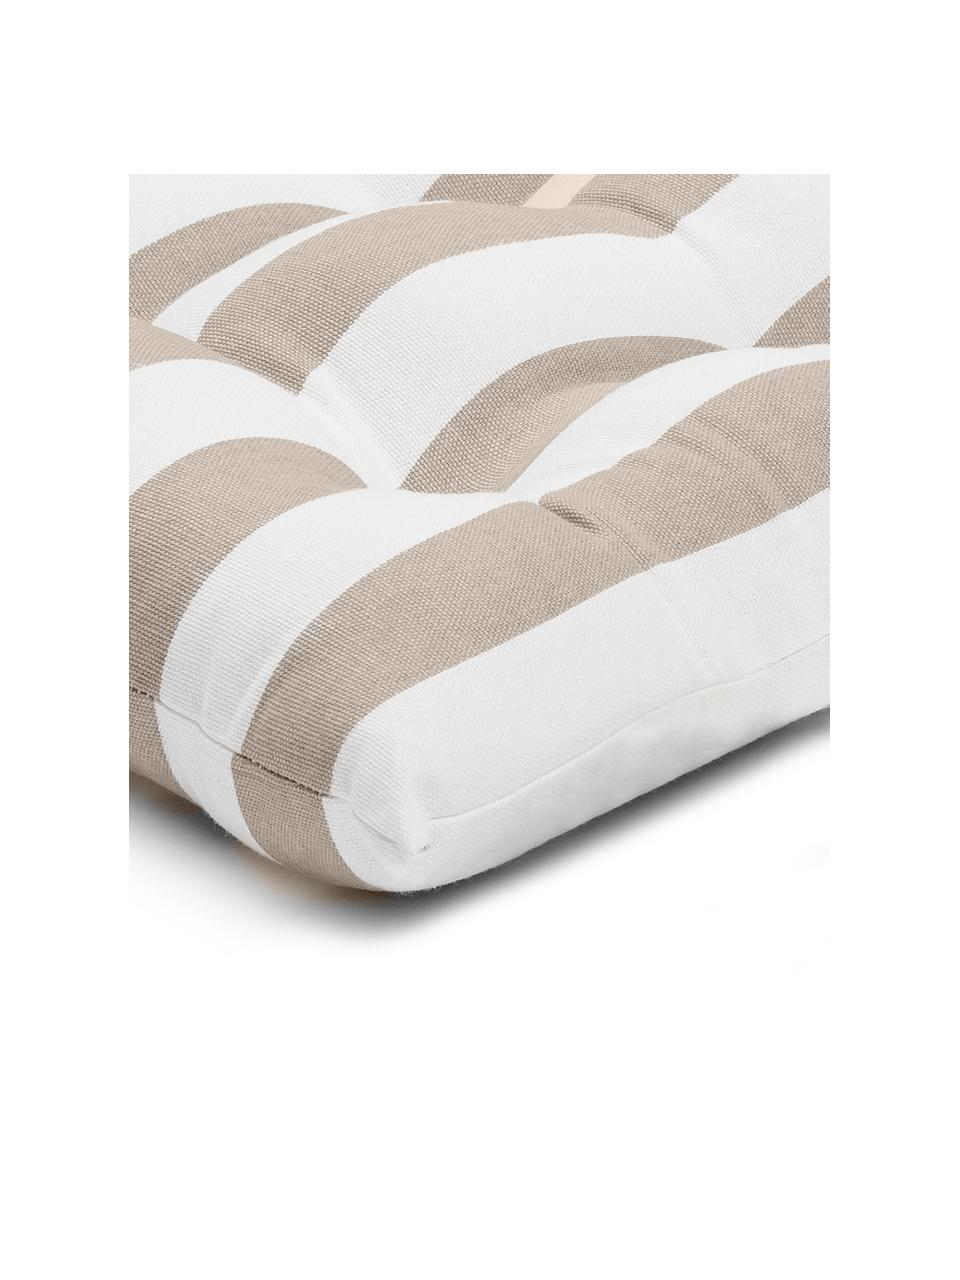 Coussin de chaise à rayures Timon, Taupe, blanc